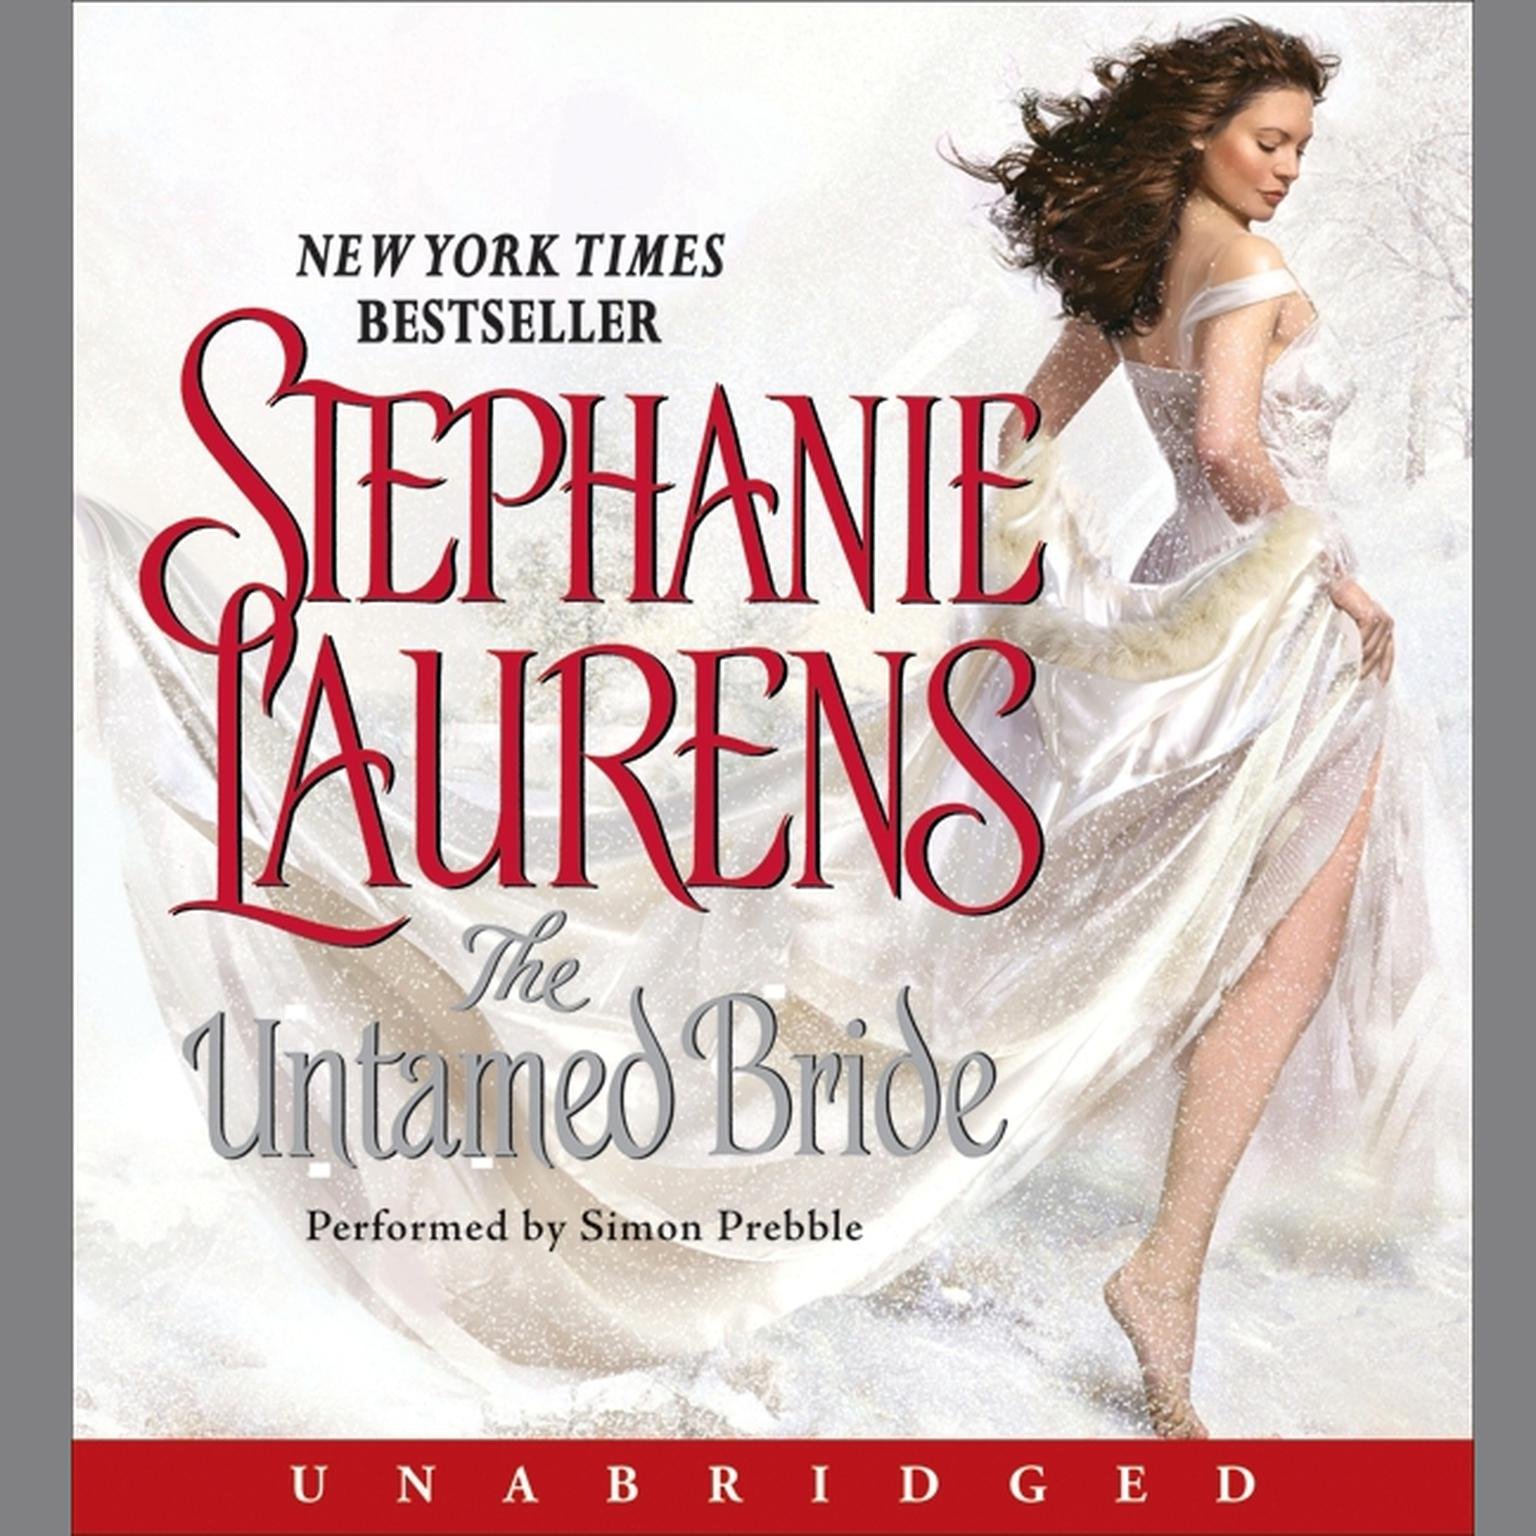 Printable The Untamed Bride Audiobook Cover Art